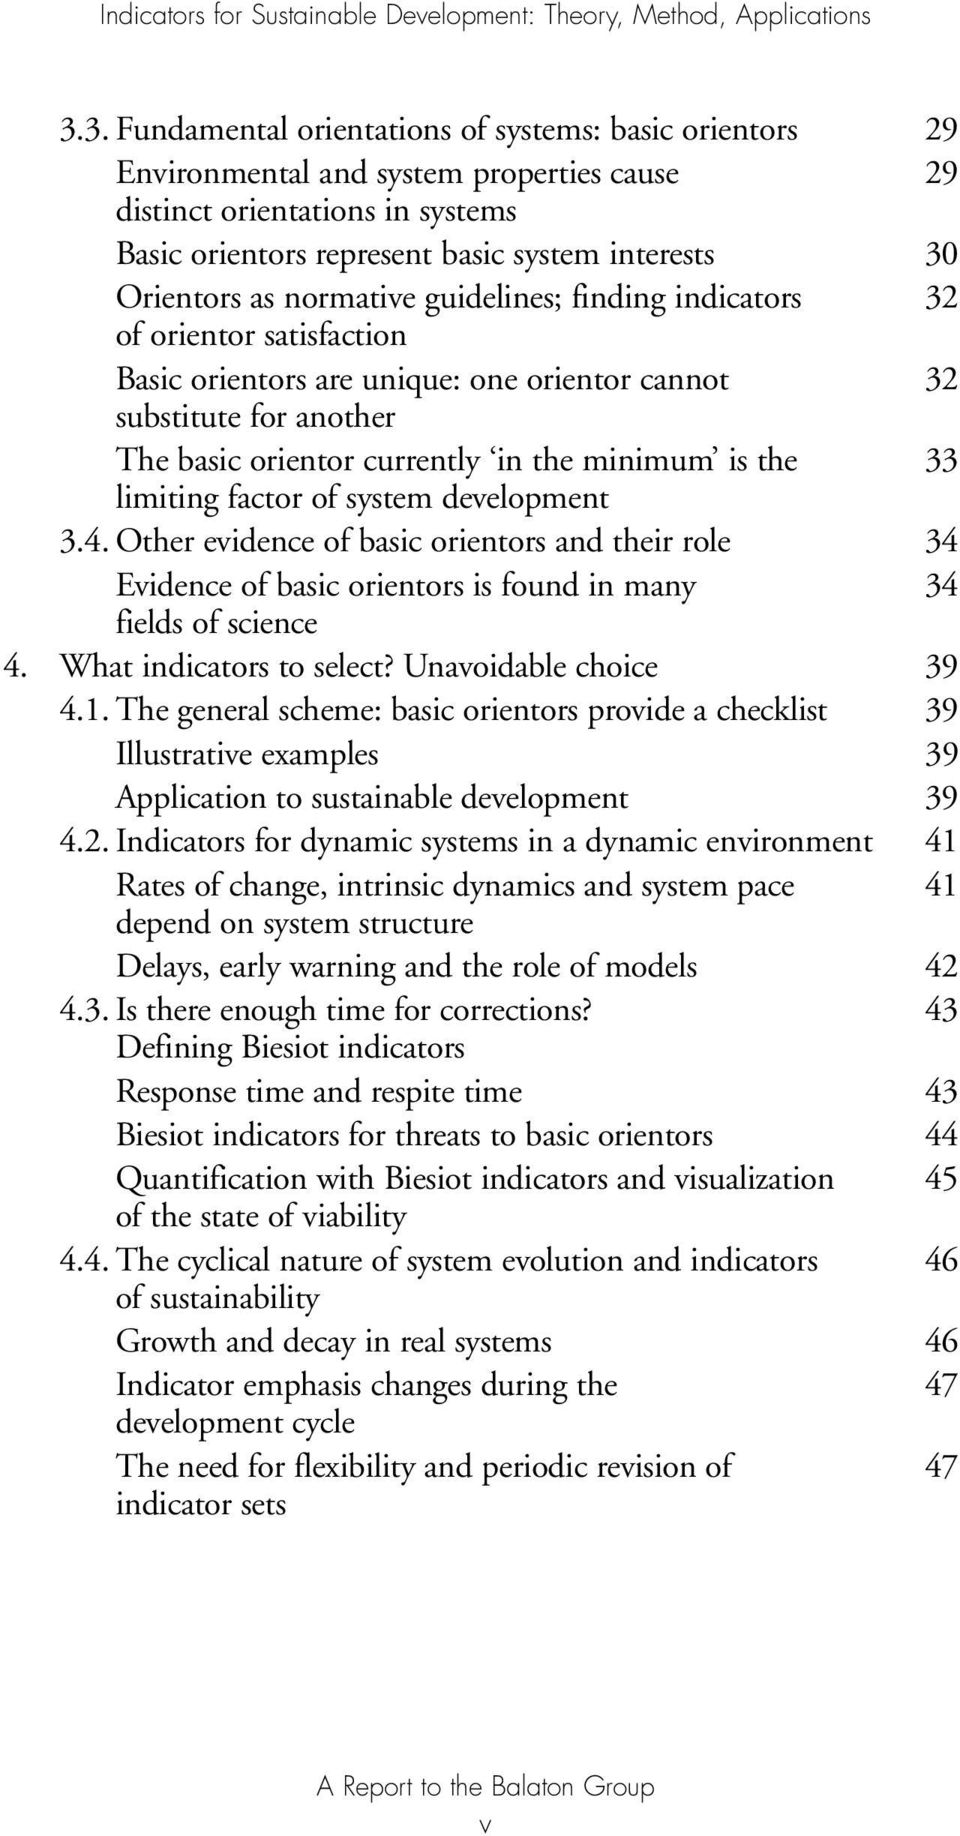 limiting factor of system development 3.4. Other evidence of basic orientors and their role 34 Evidence of basic orientors is found in many 34 fields of science 4. What indicators to select?